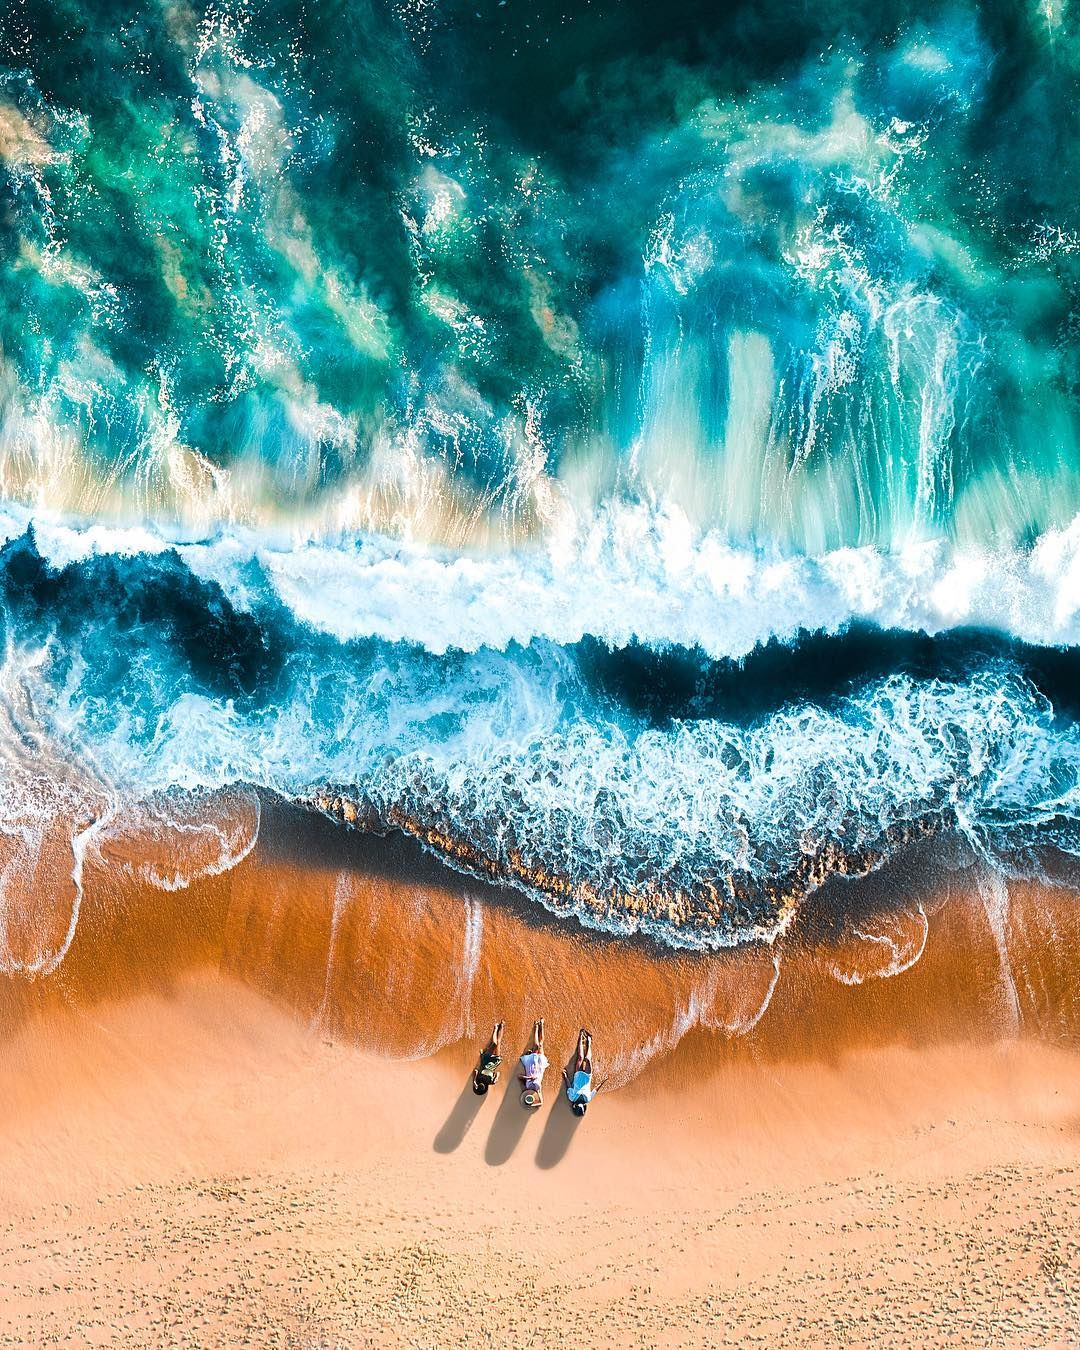 California Beaches From Above Drone Photography By Emily Kaszton Inspiration